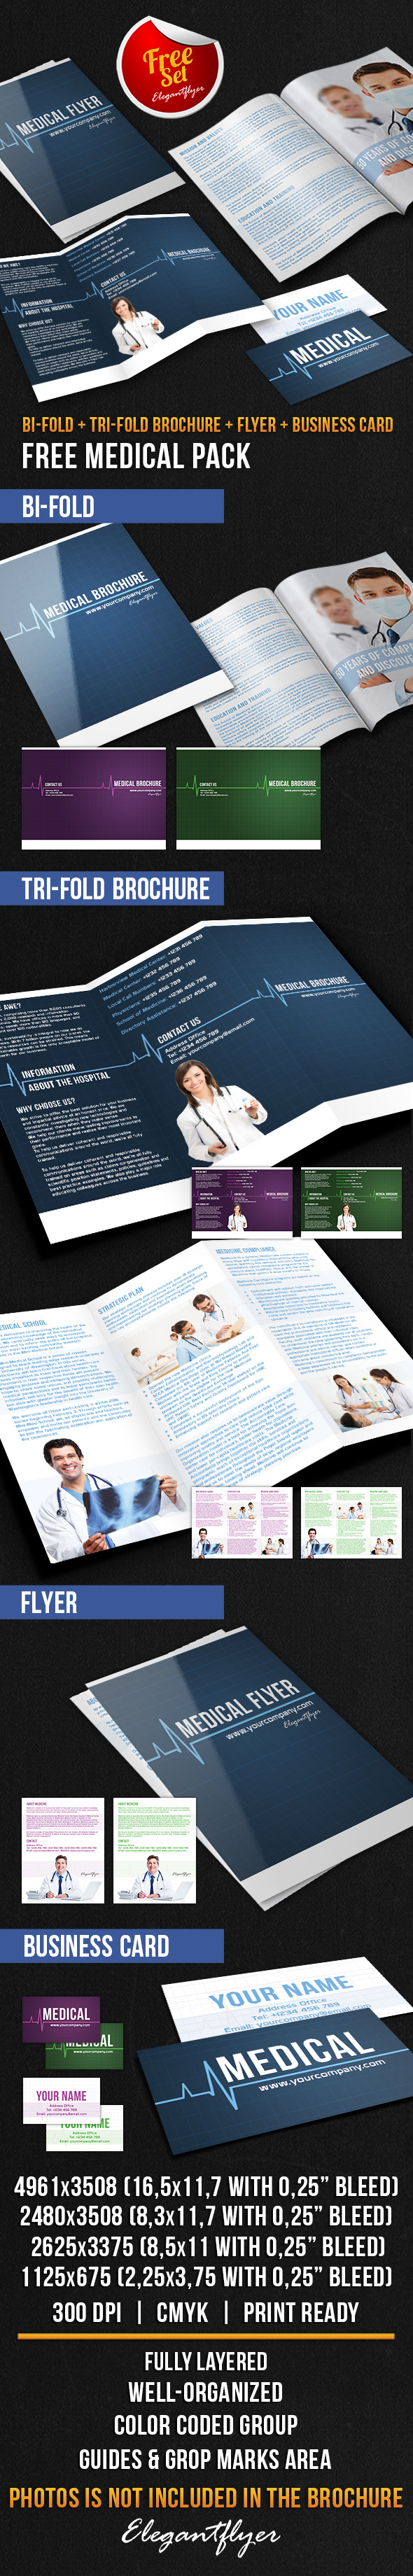 Bigpreview_medical-brochure-pack-free-psd-template